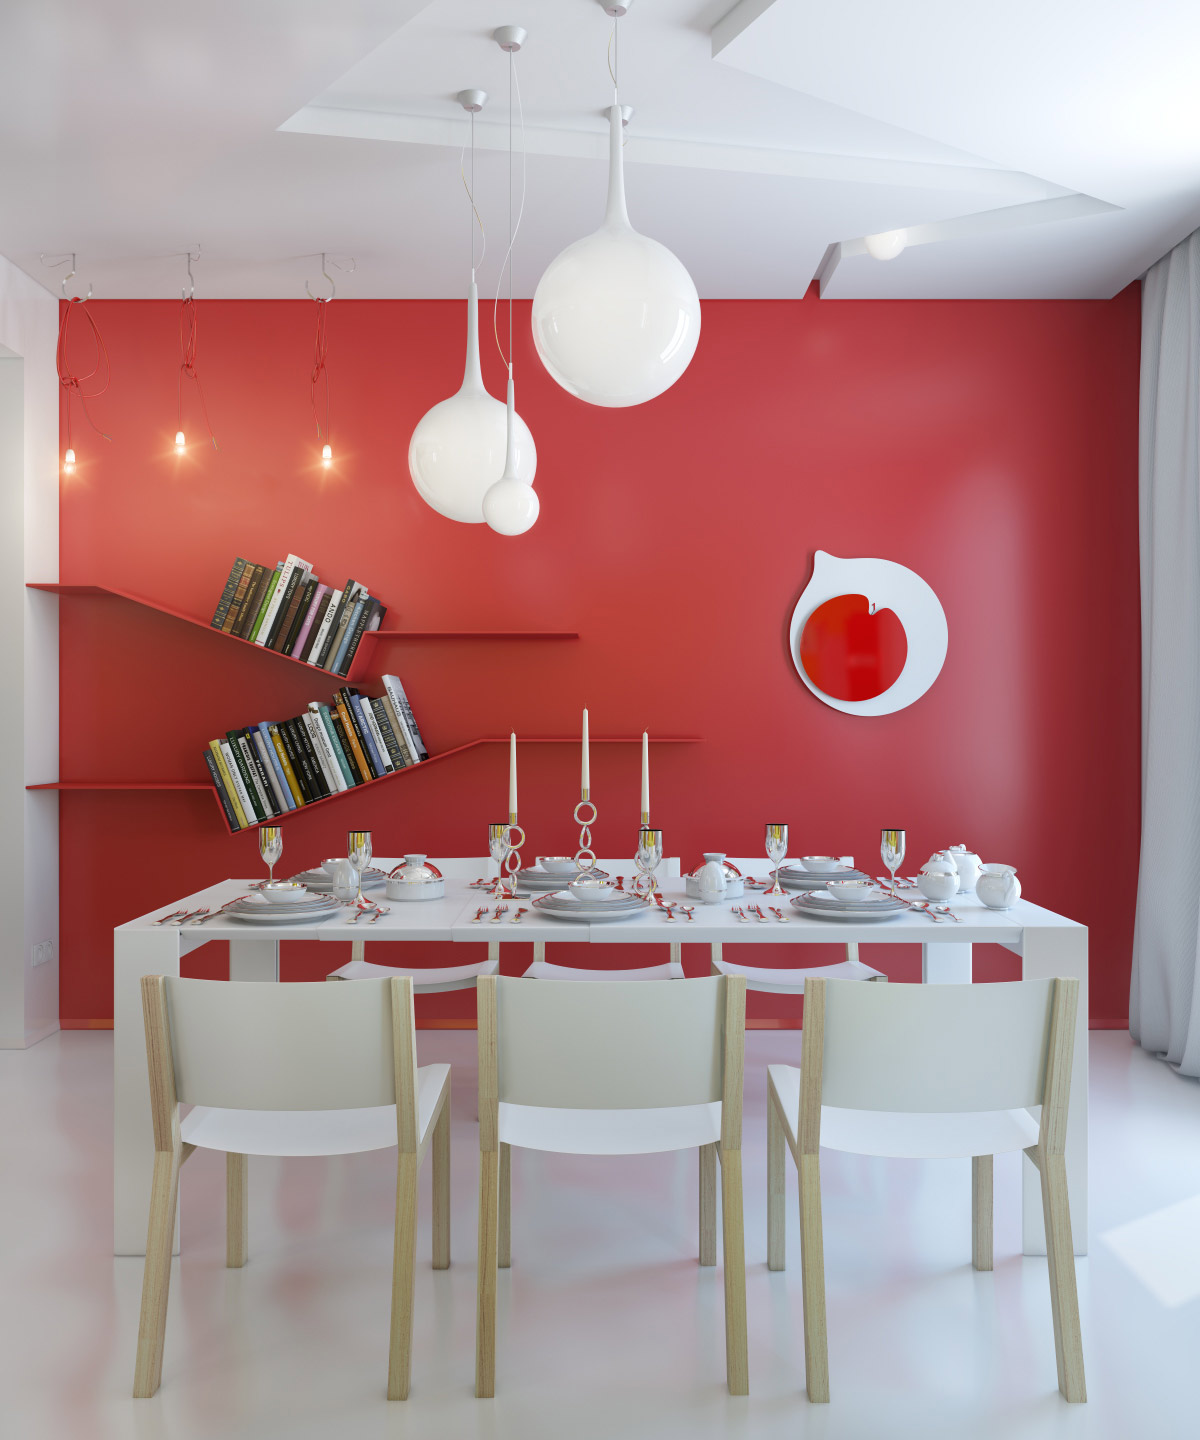 Outstanding Dining Room with Red Walls 1200 x 1440 · 198 kB · jpeg